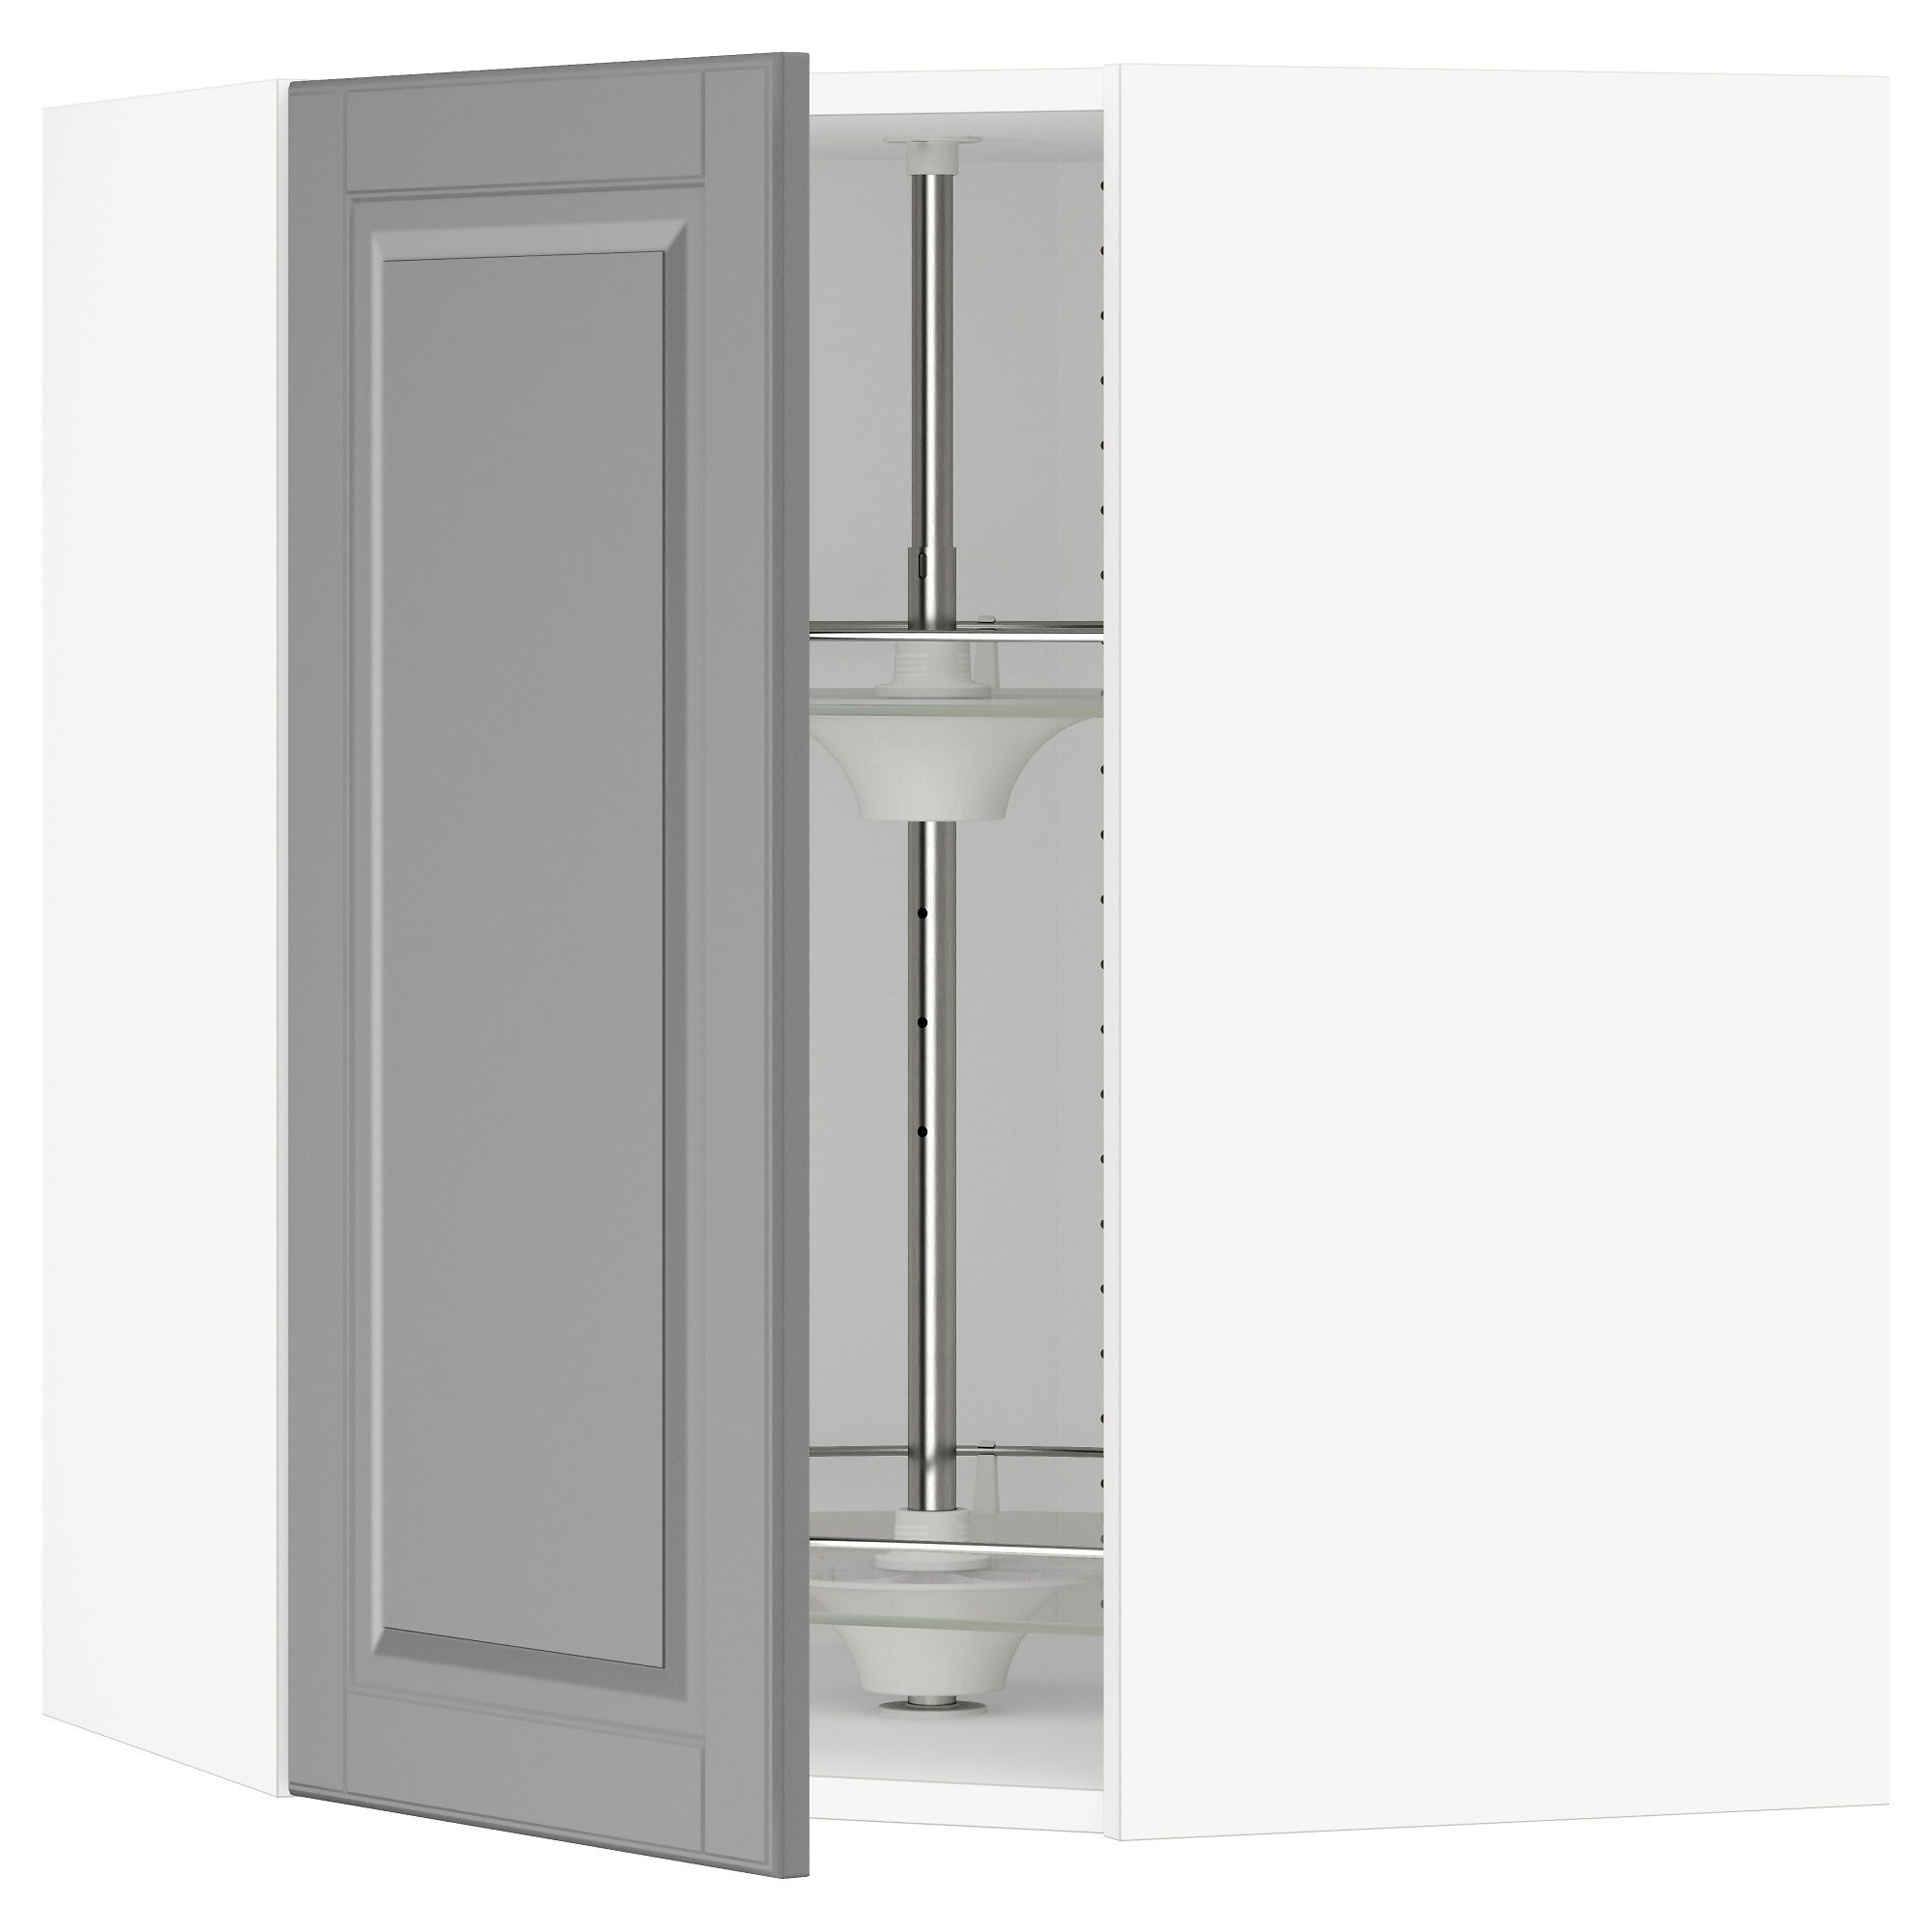 Wall Cabinets - SEKTION System - IKEA for corner wall cabinet dimensions  104xkb